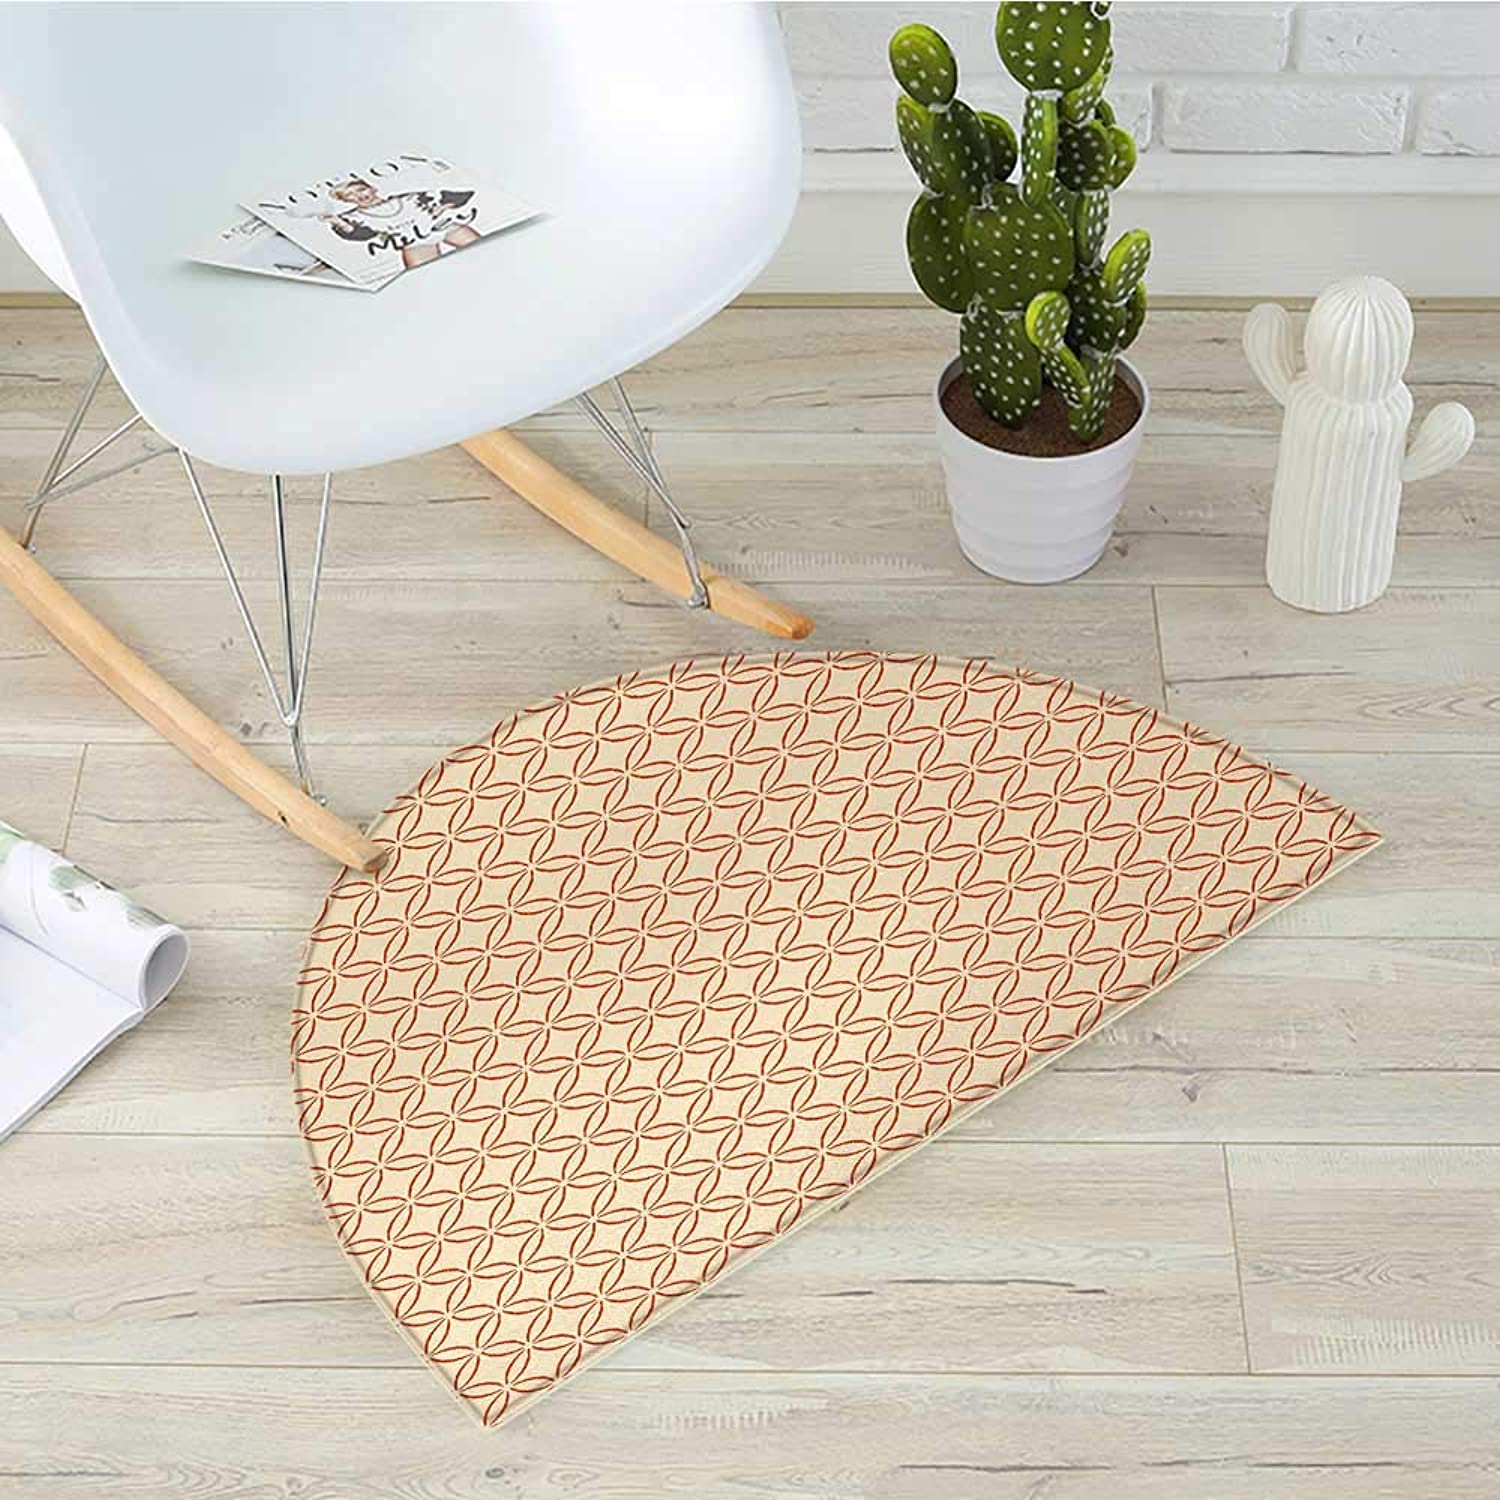 Geometric Semicircular CushionLattice Circles Pattern with Intertwined Oval Shapes Traditional Japanese Entry Door Mat H 39.3  xD 59  Vermilion Cream